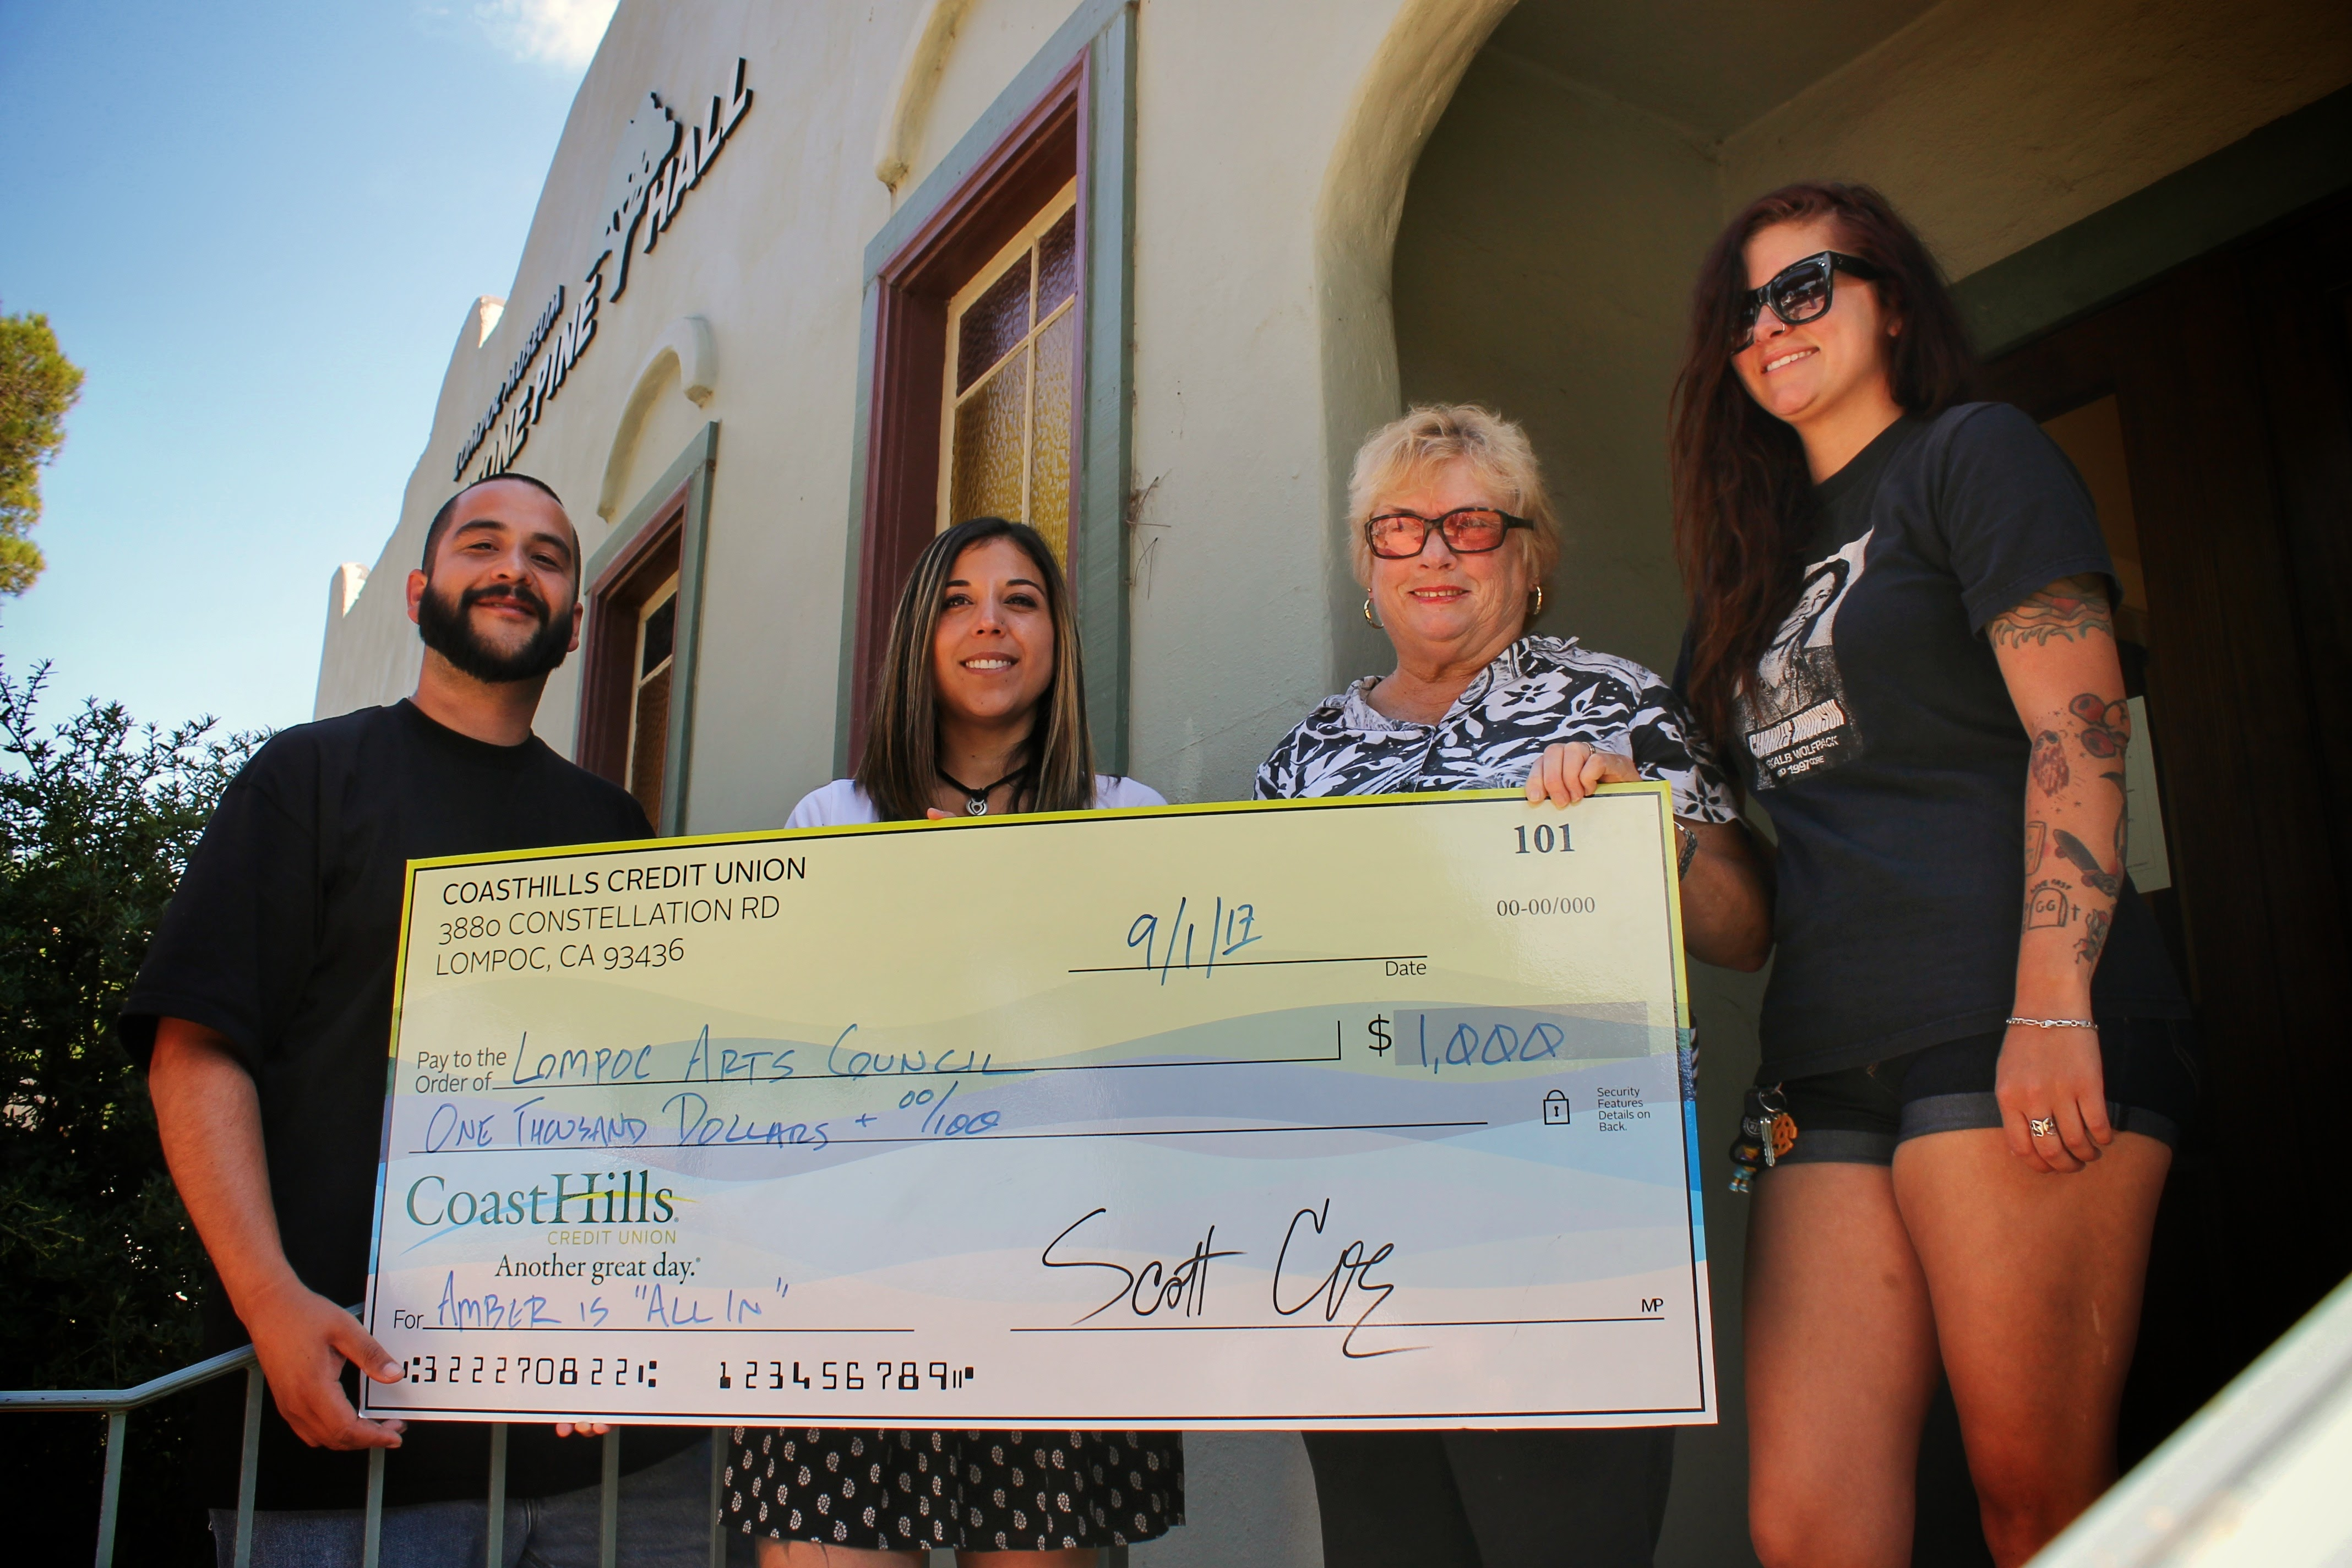 Representatives from CoastHills, First Thursdays and the Lompoc Arts Council pose with a check for $1,000.